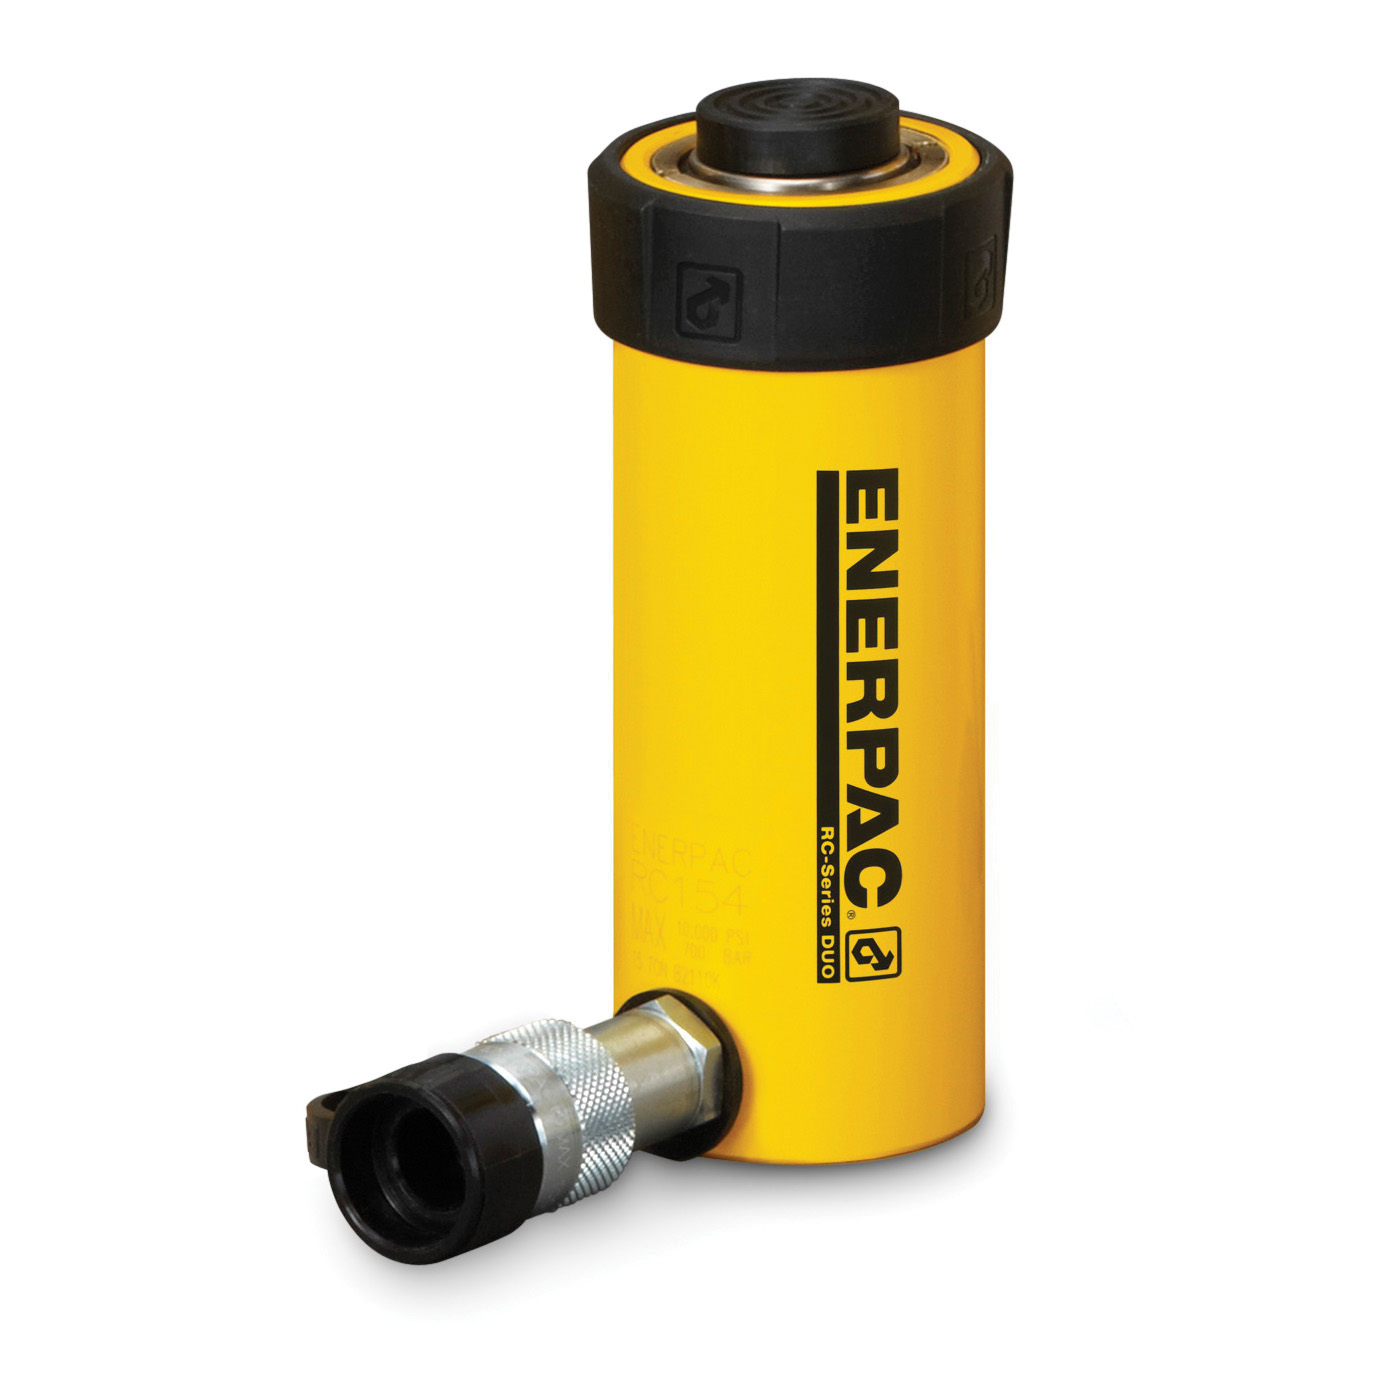 Enerpac® RC-101 DUO General Purpose Single Acting Hydraulic Cylinder, 10 ton Capacity, 1.69 in Dia Bore, 1 in L Stroke, 3.53 in H Retract, 1-1/2 in Dia Rod, 700 bar